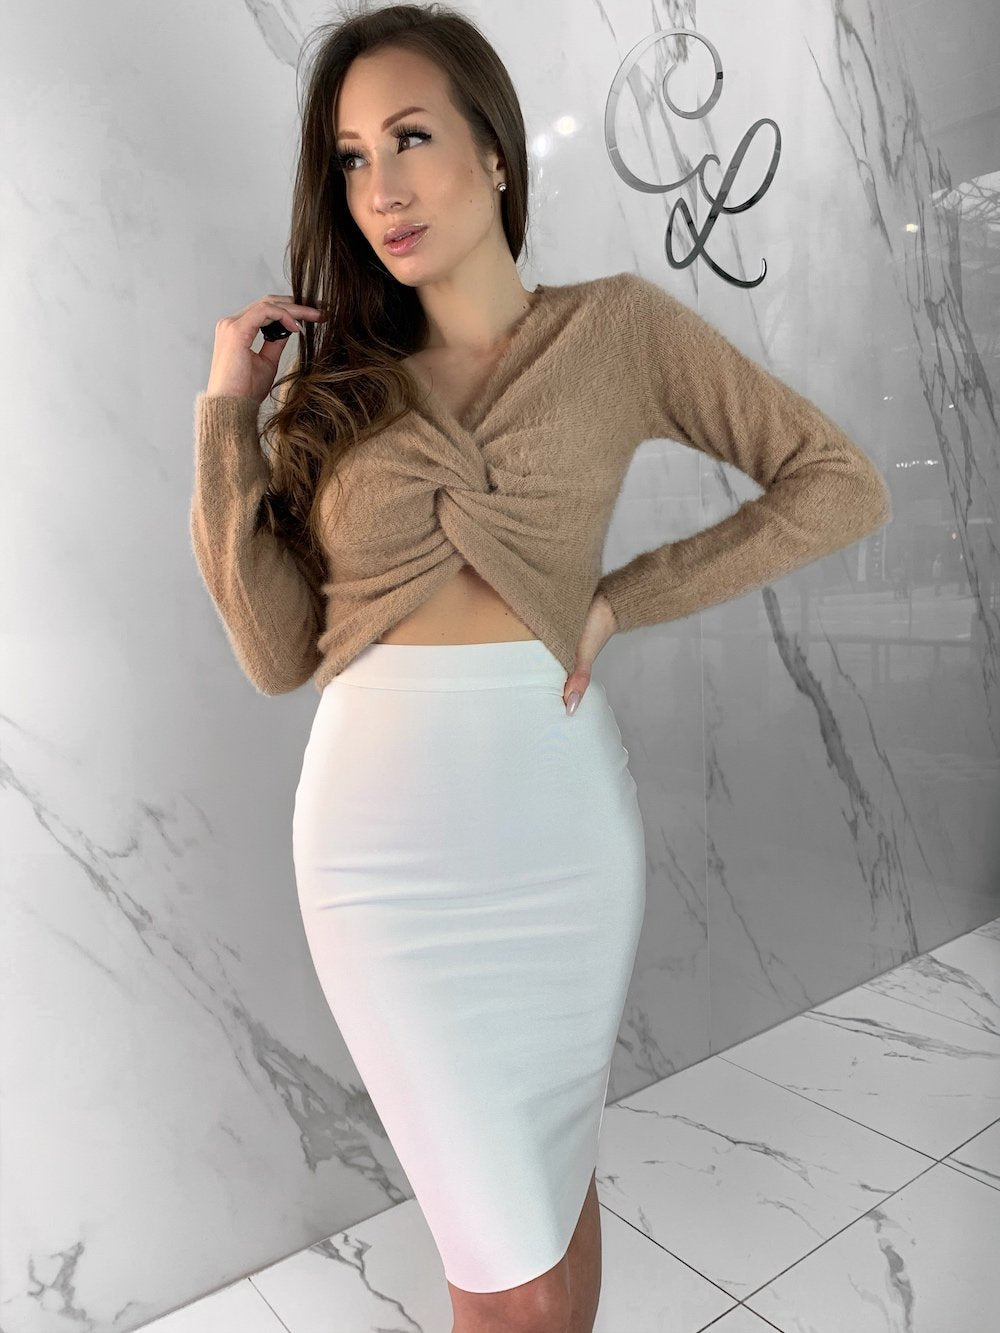 Norie Top, Women's Taupe Tops